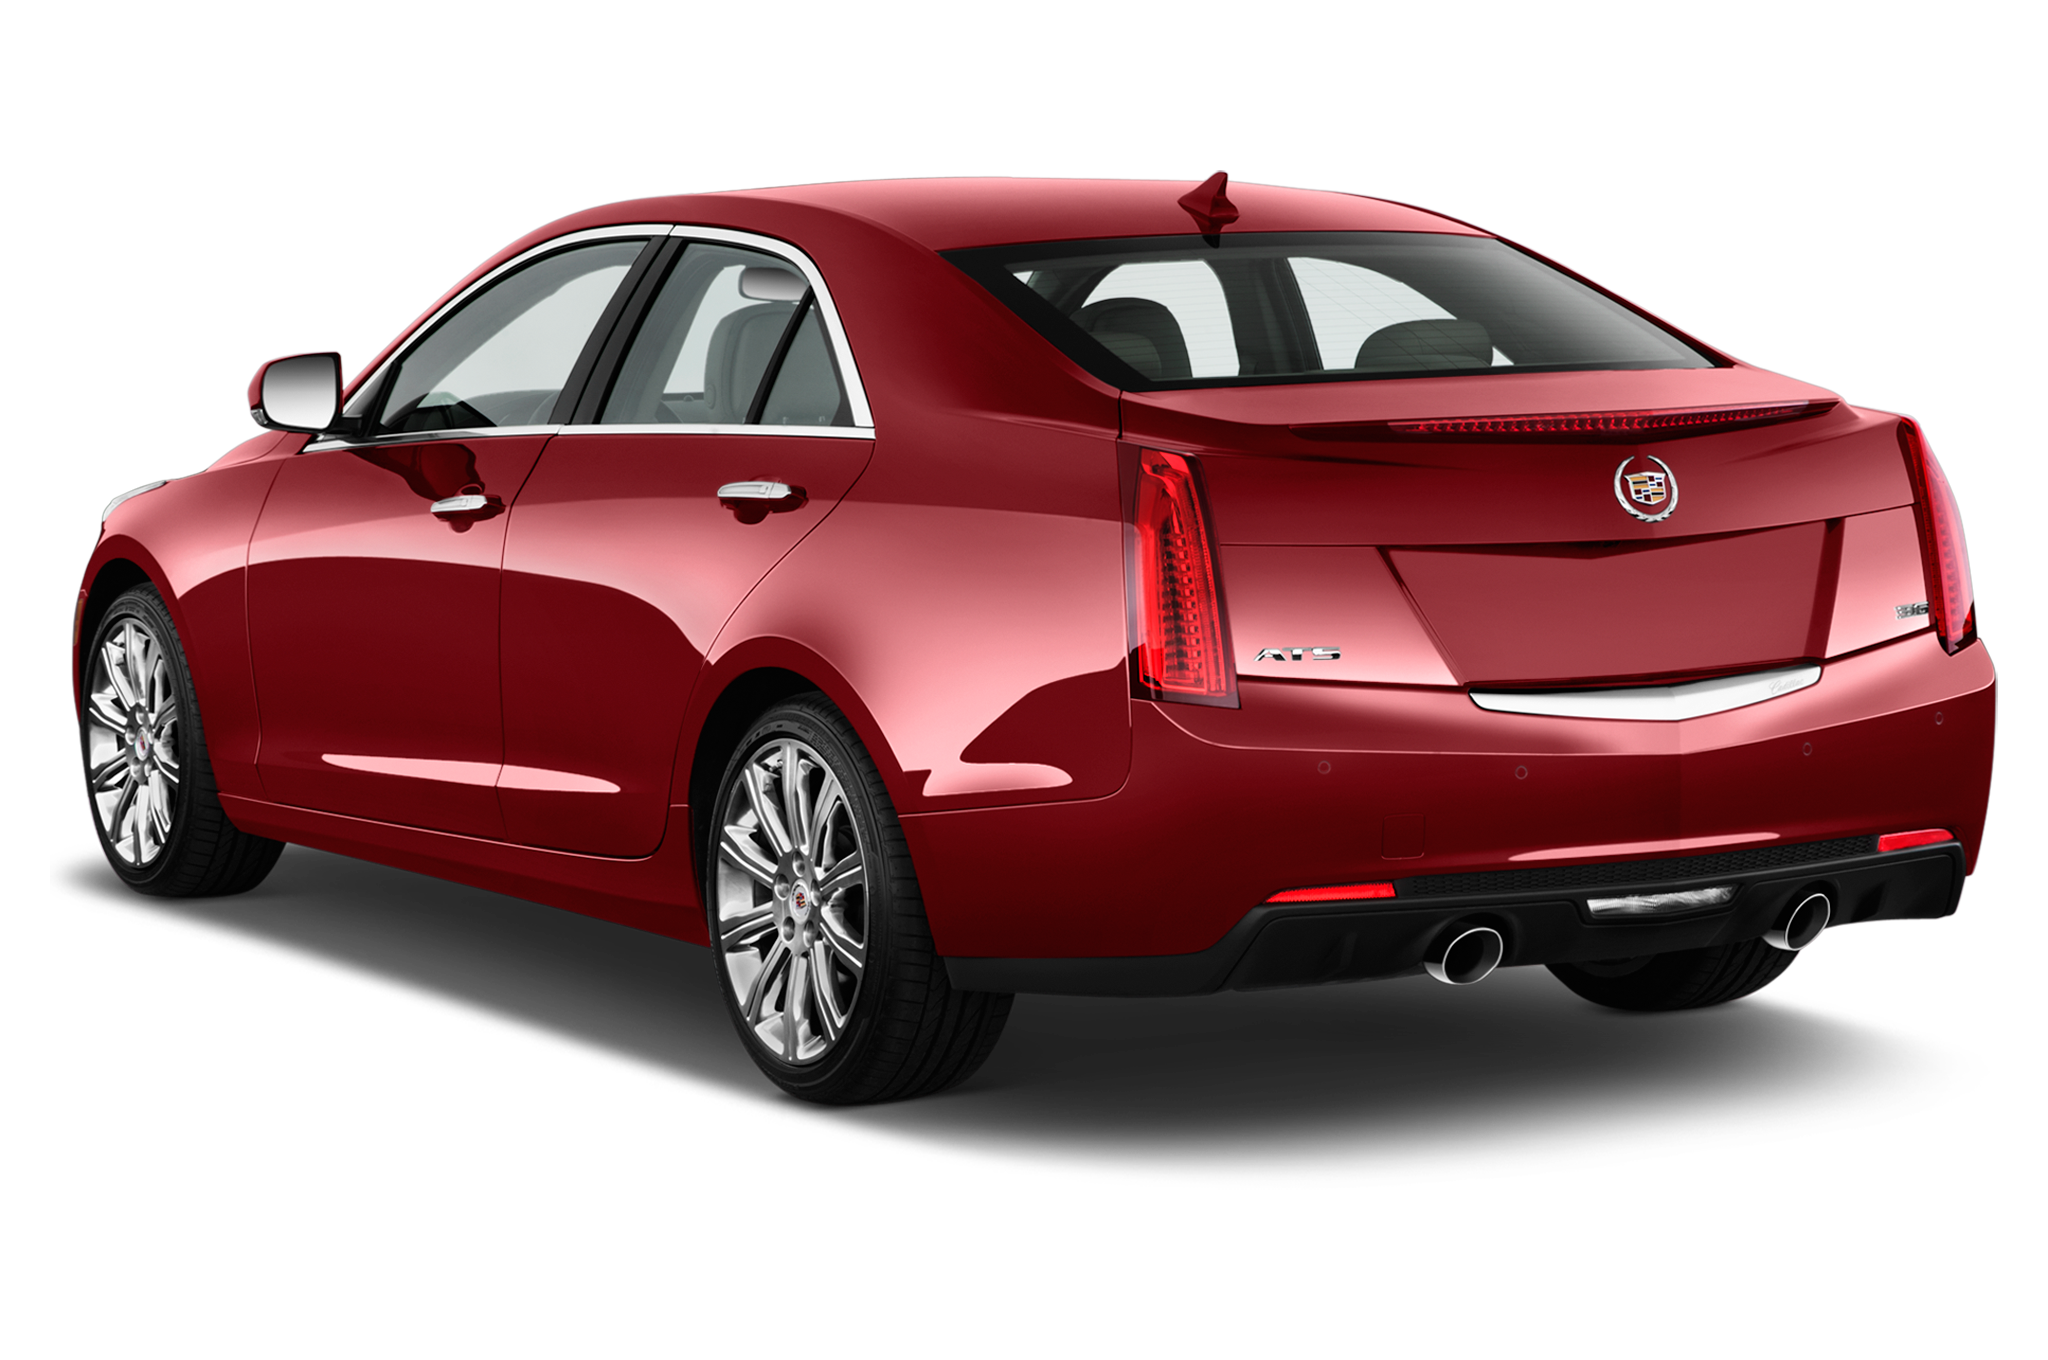 Cadillac ATS 2 0T Luxury Collection AWD 2013 International Price